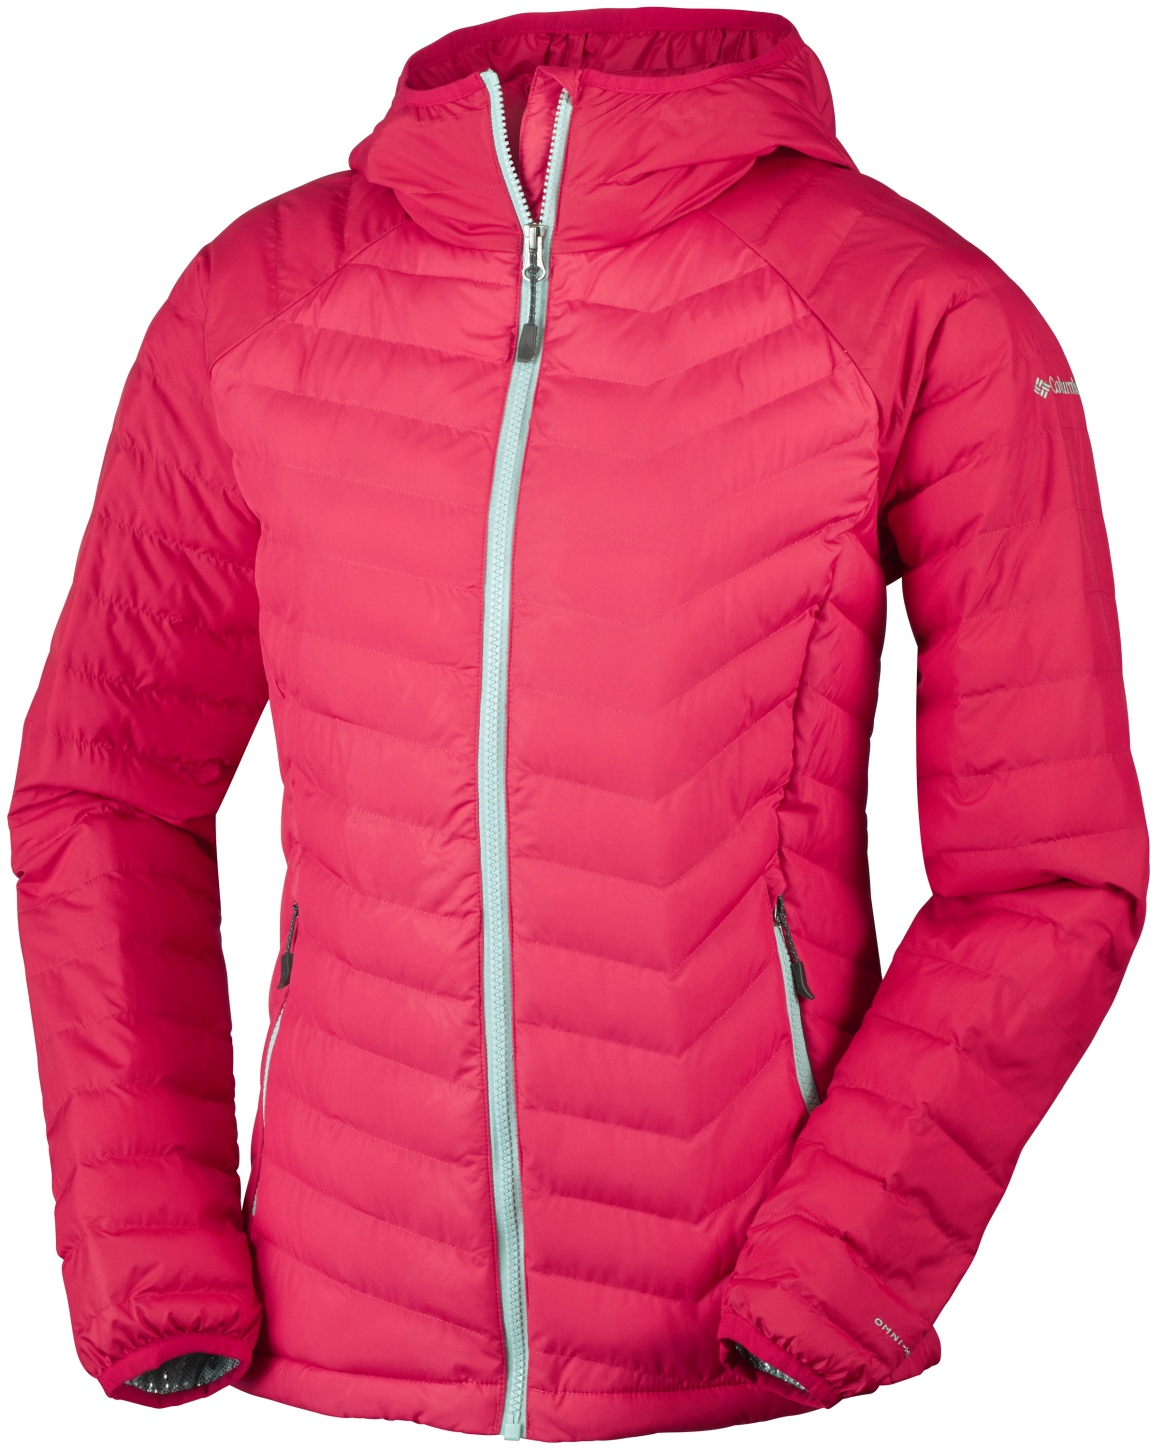 Columbia Women's Powder Lite Hooded Jacket Red Camellia, Red Lily-30